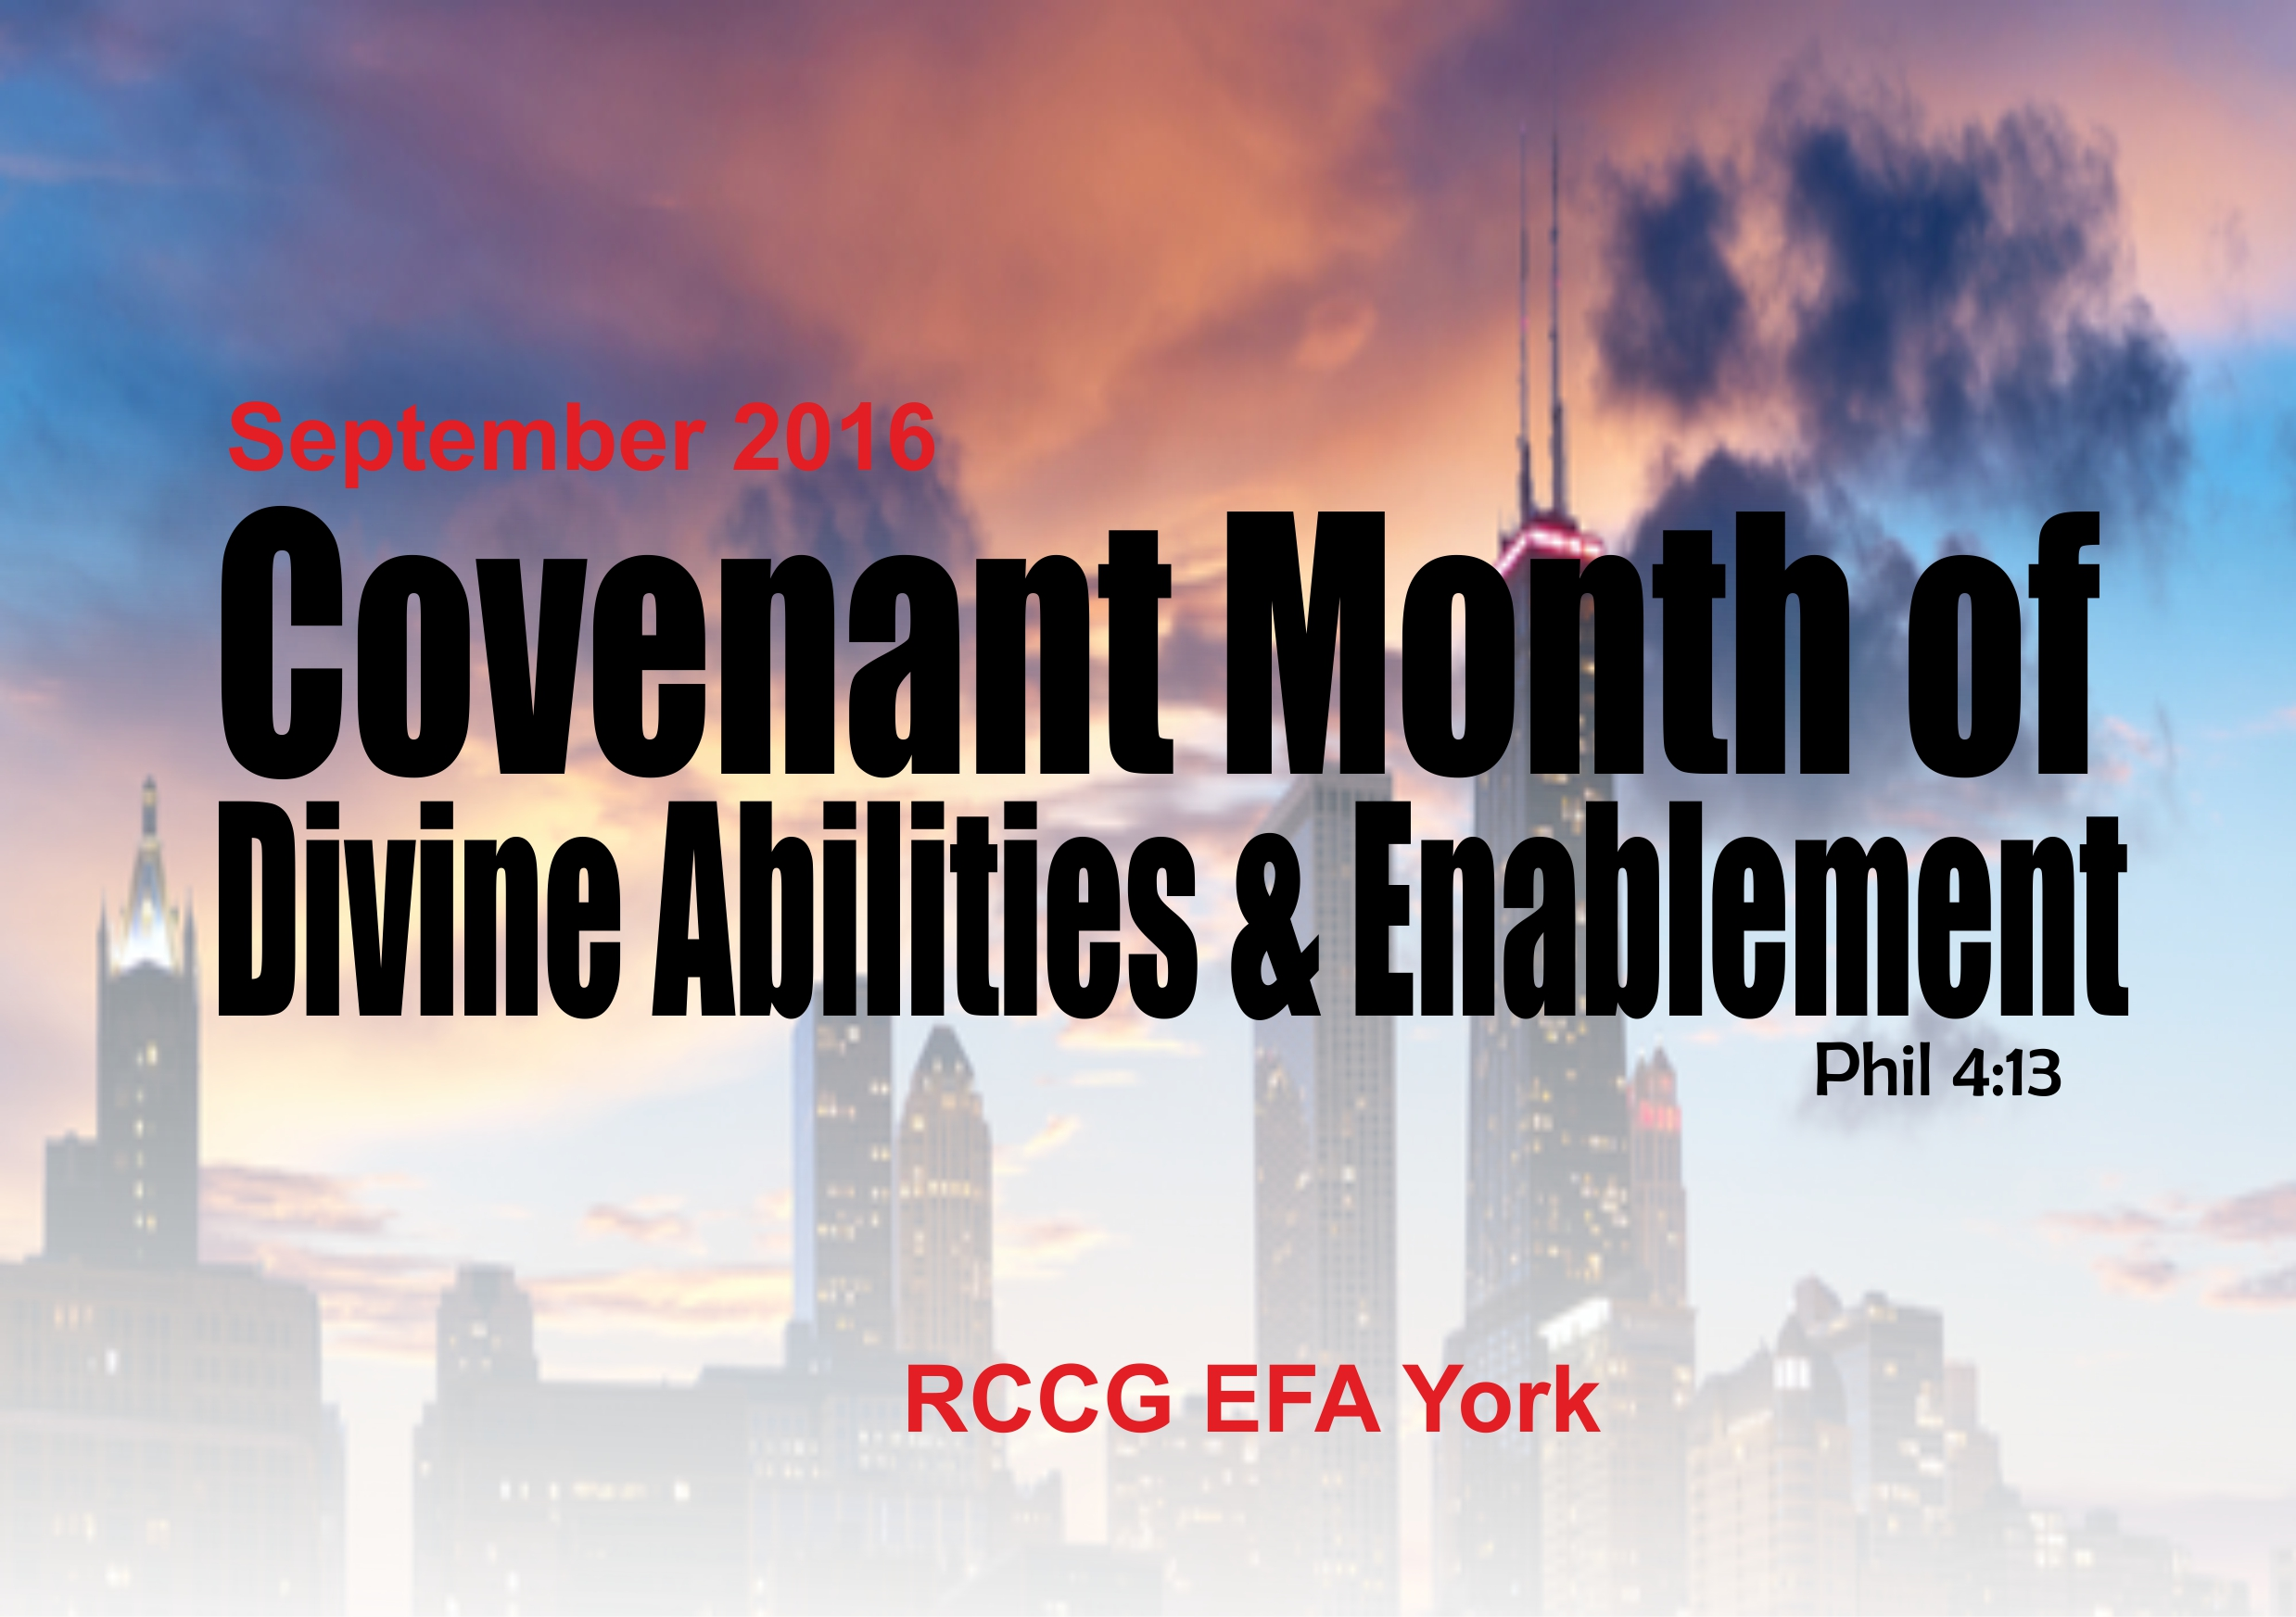 September 2016 Theme: Covenant Month of Divine Abilities and Enablement  (Phil 4:13)